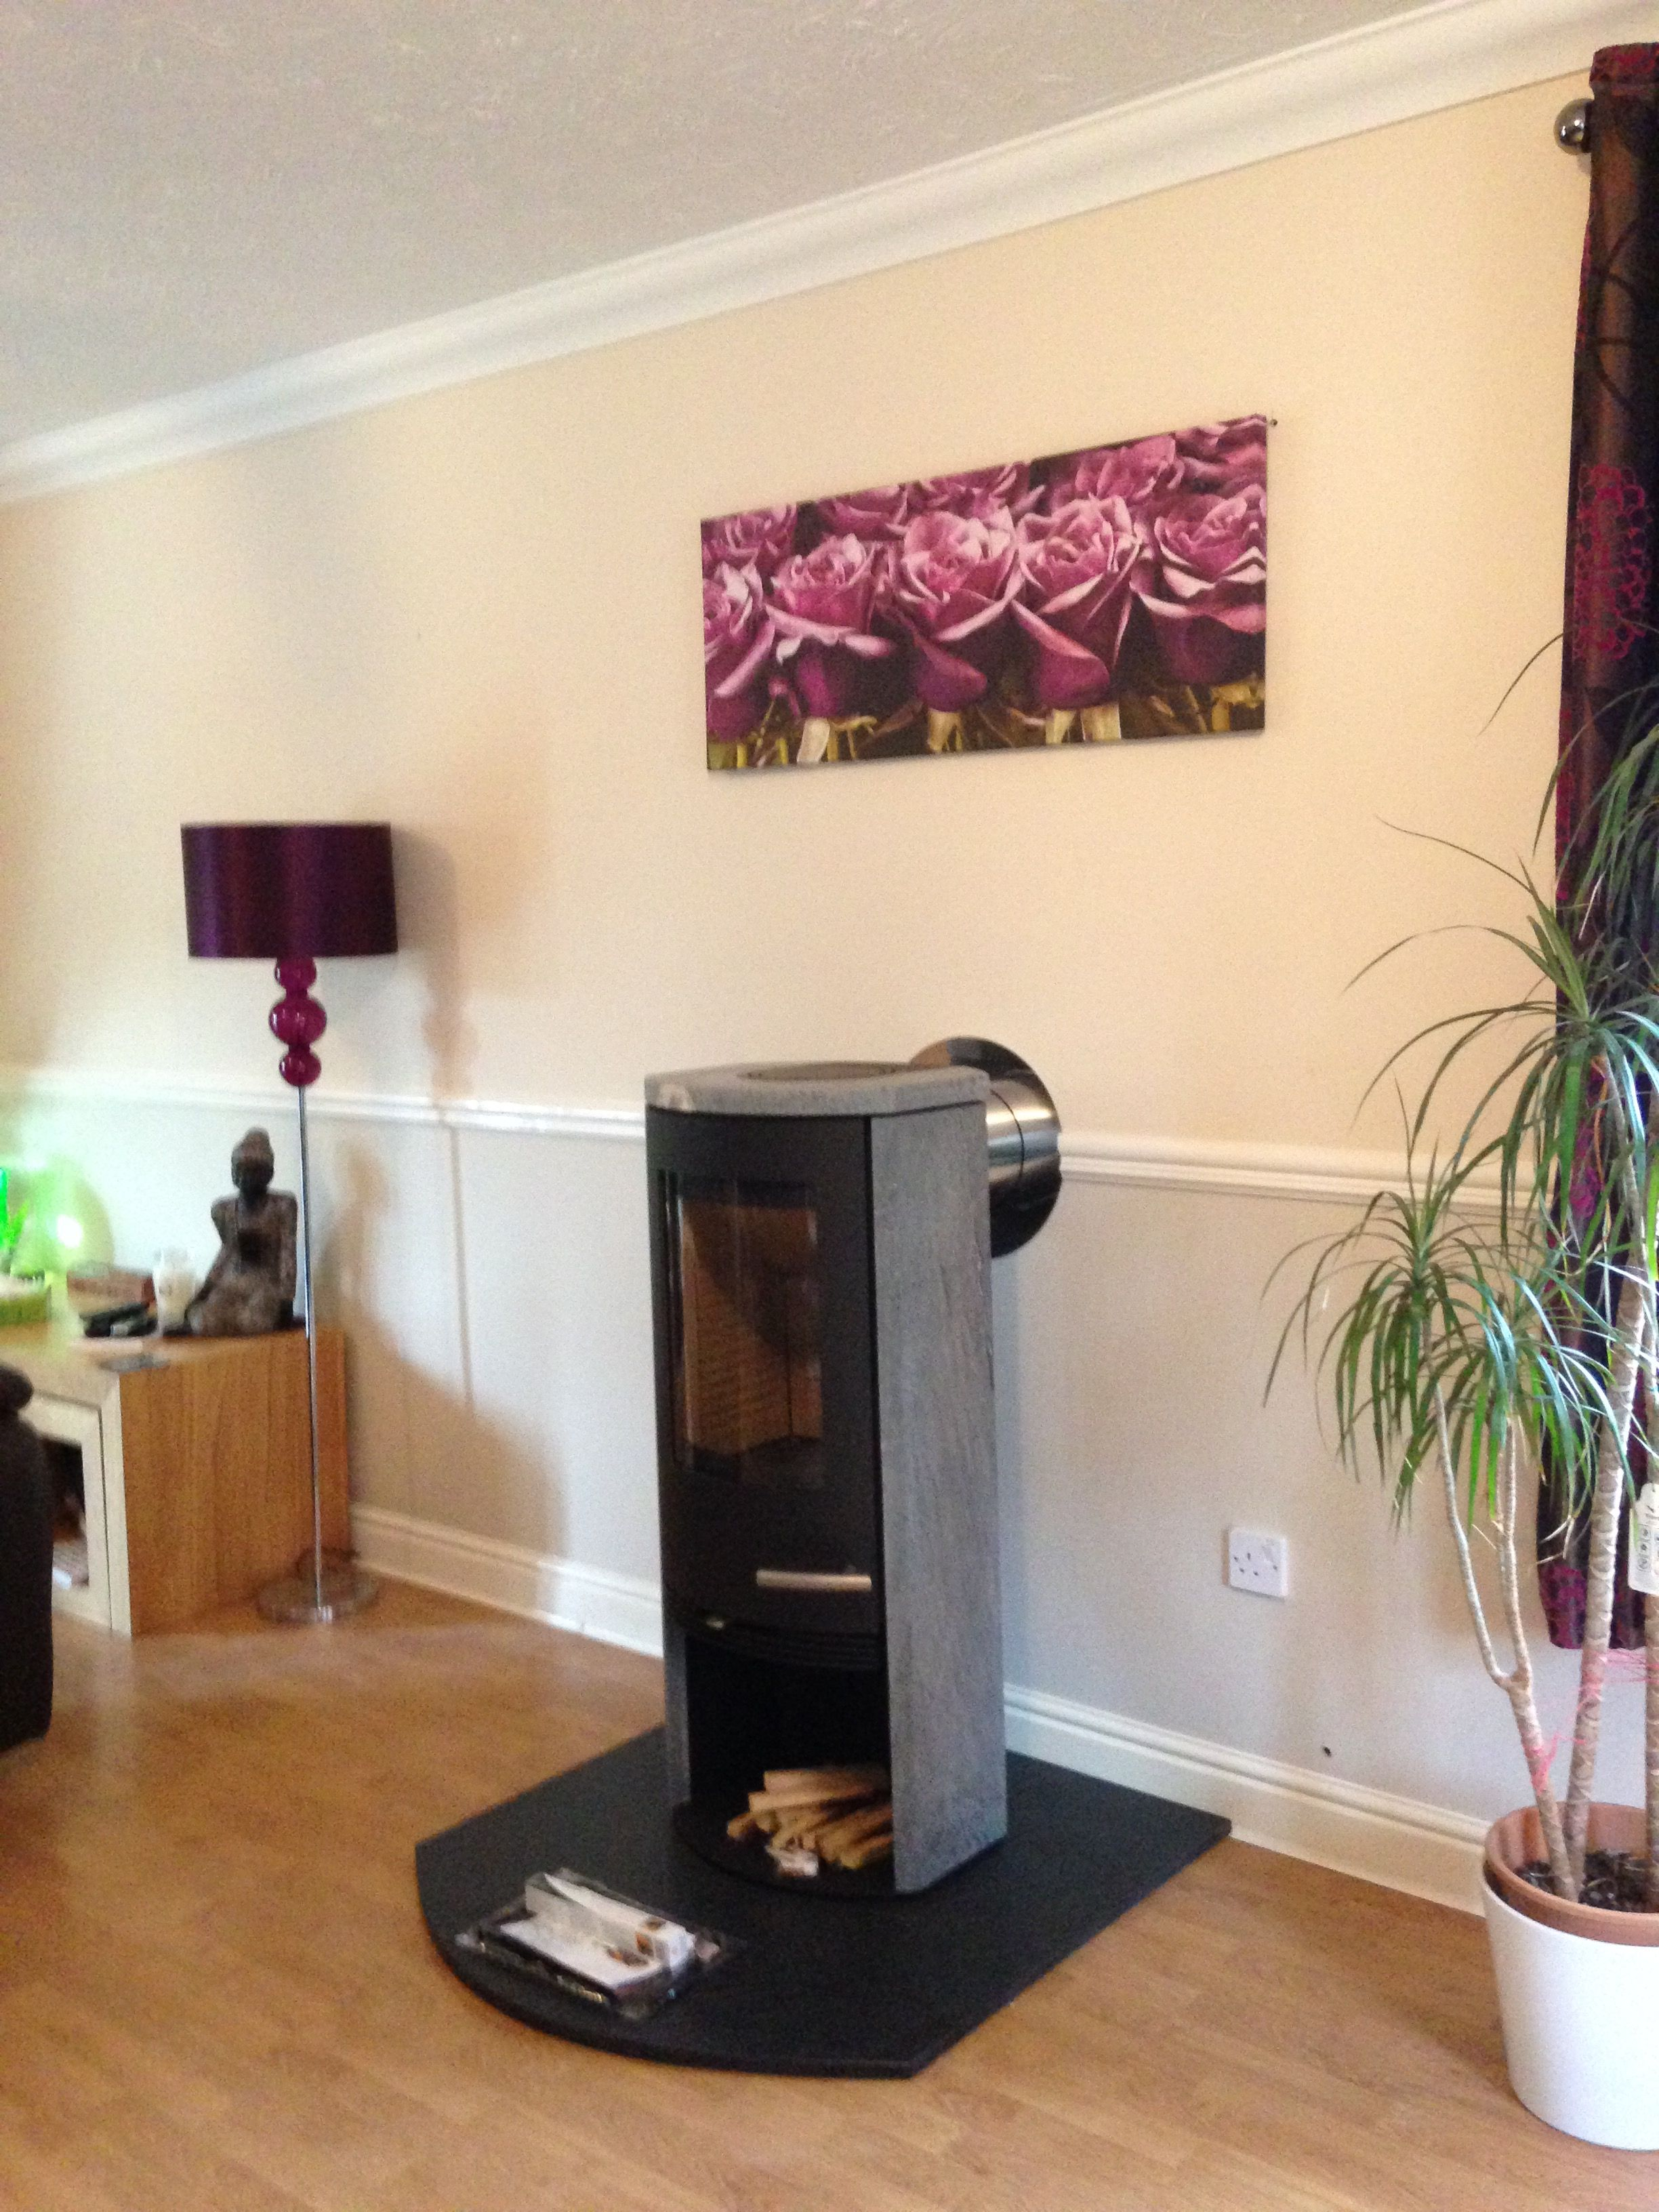 Termatech TT20S (Soapstone) stove, sitting on a honed black granite hearth  in a